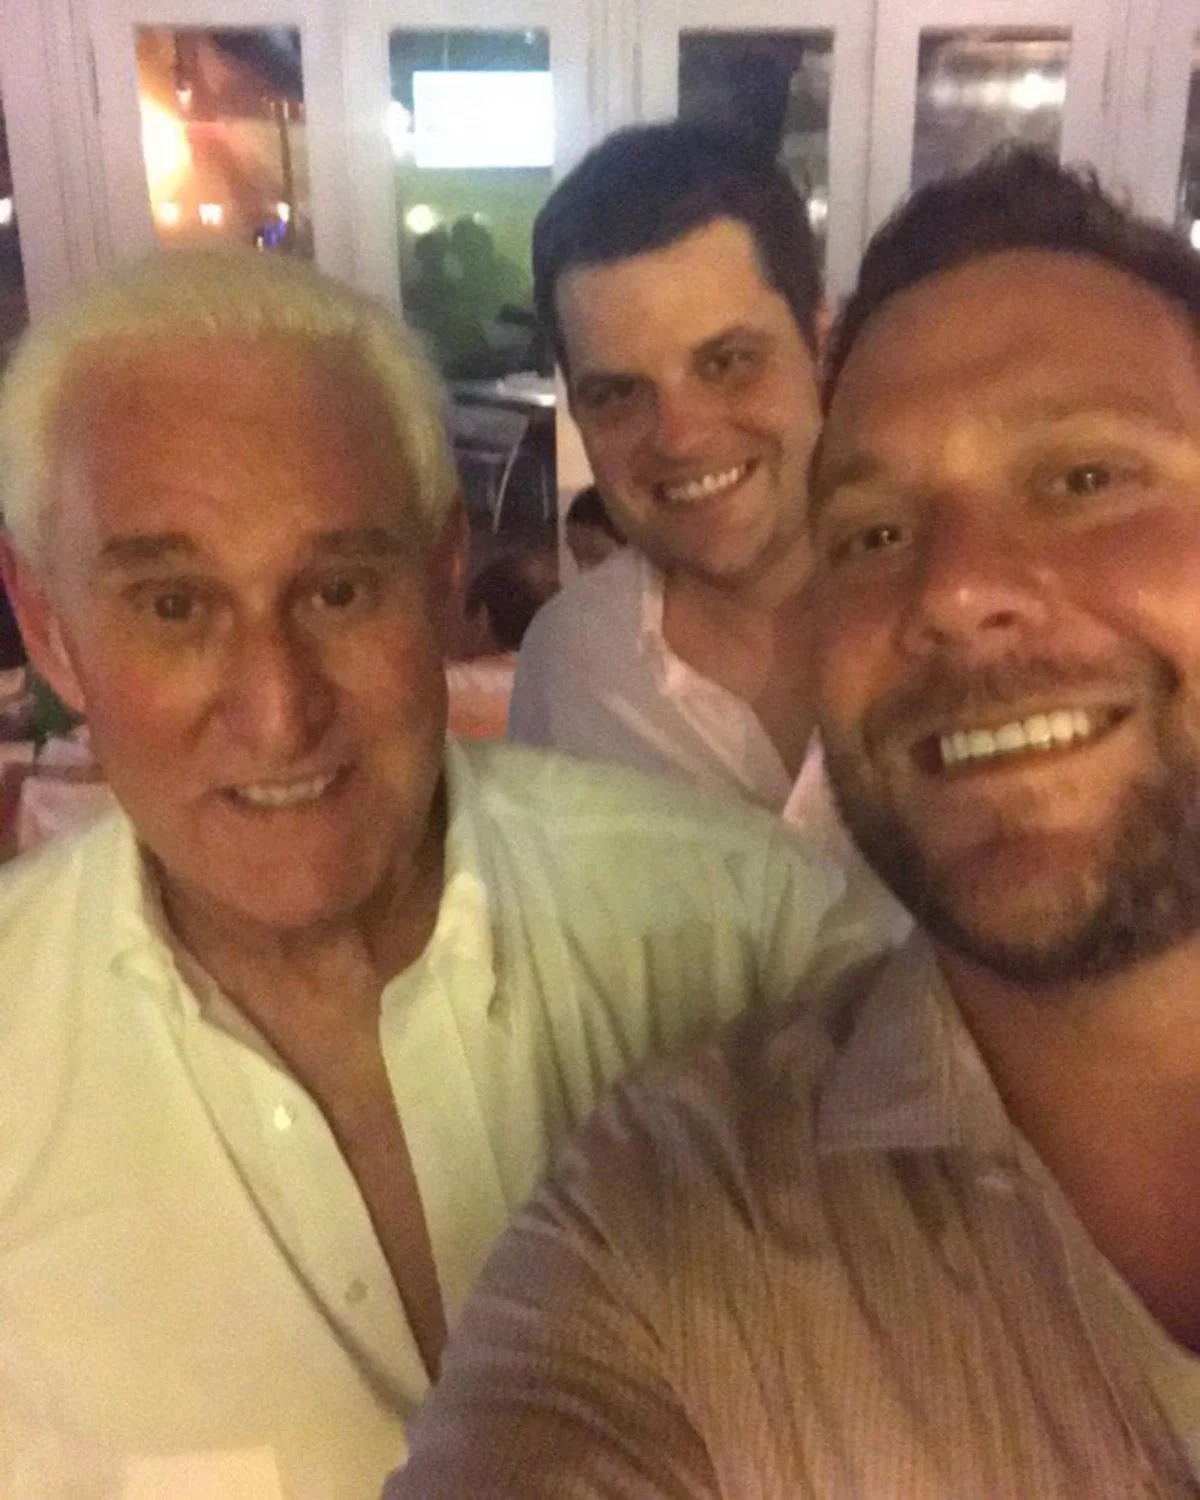 Everything you need to know about the allegations against Matt Gaetz and his associates